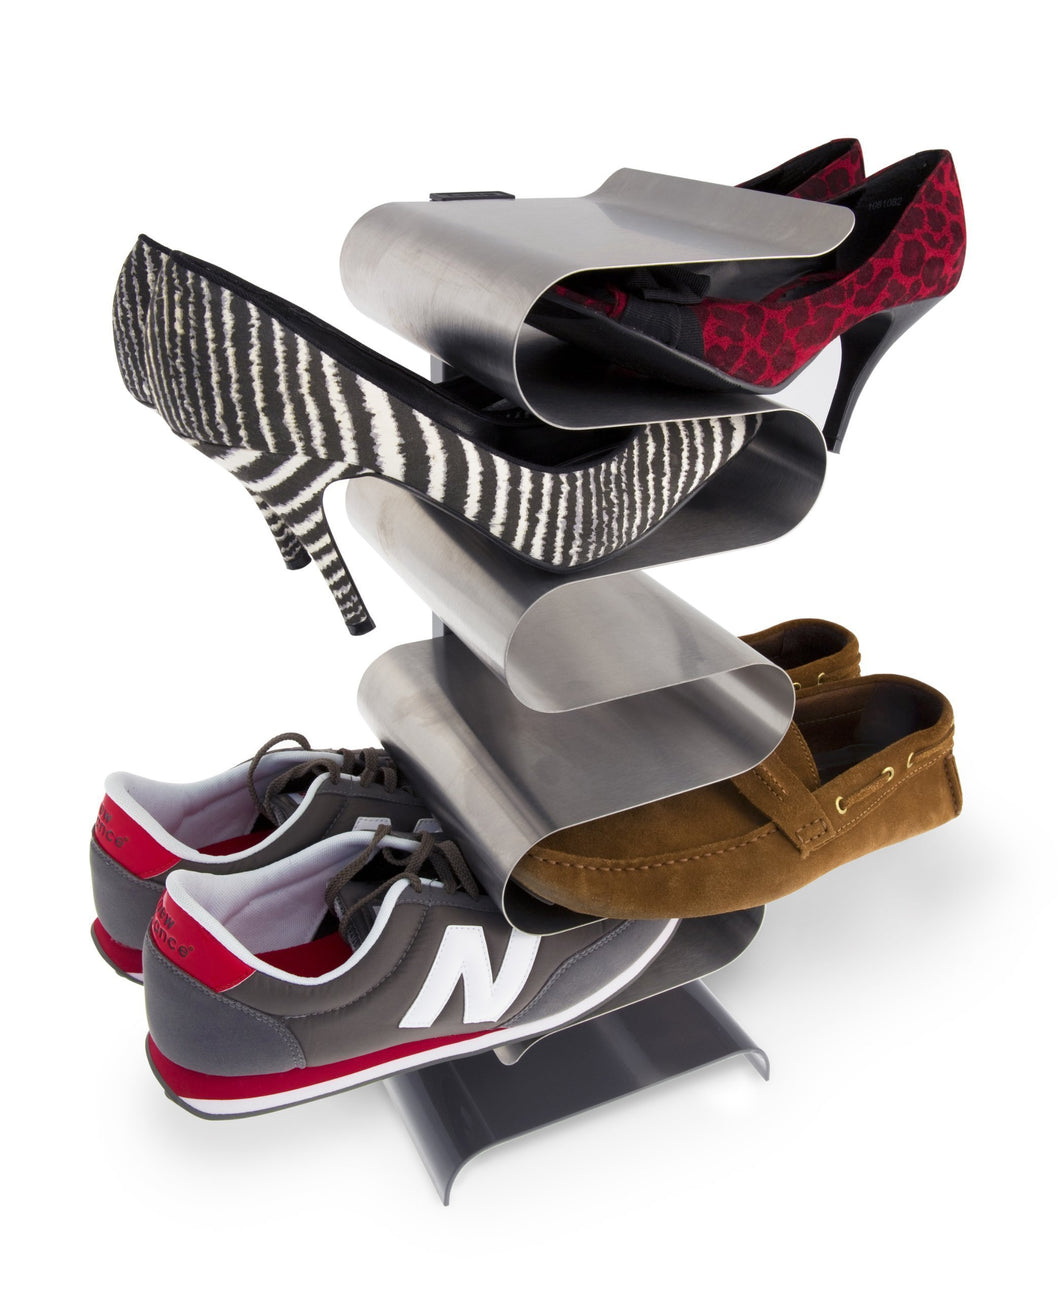 j-me Nest Freestanding Shoe Rack - Shoe Organizer Keeps Shoes, Boots, Sneakers and Sandals Off The Floor. A Great Shoe Storage Solution for Your Entryway, Living Room, Bedroom or Closet.